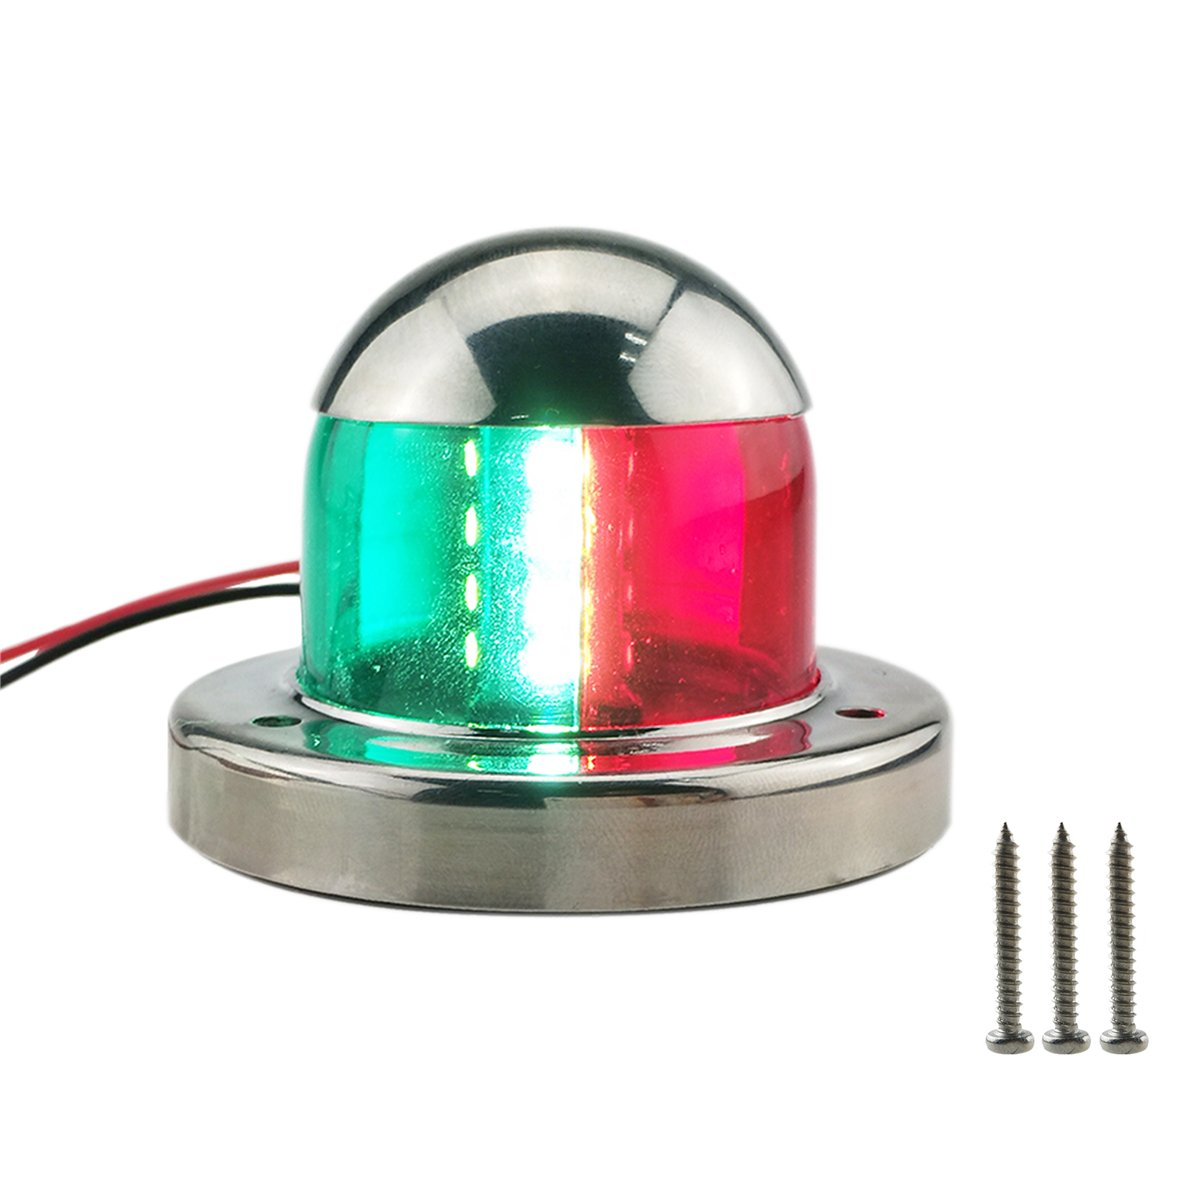 T Tocas 1 Pair DC12V Marine Boat Yacht LED Navigation Lights Stainless Steel Housing Rubber Gasket, Red & Green BNLD2944